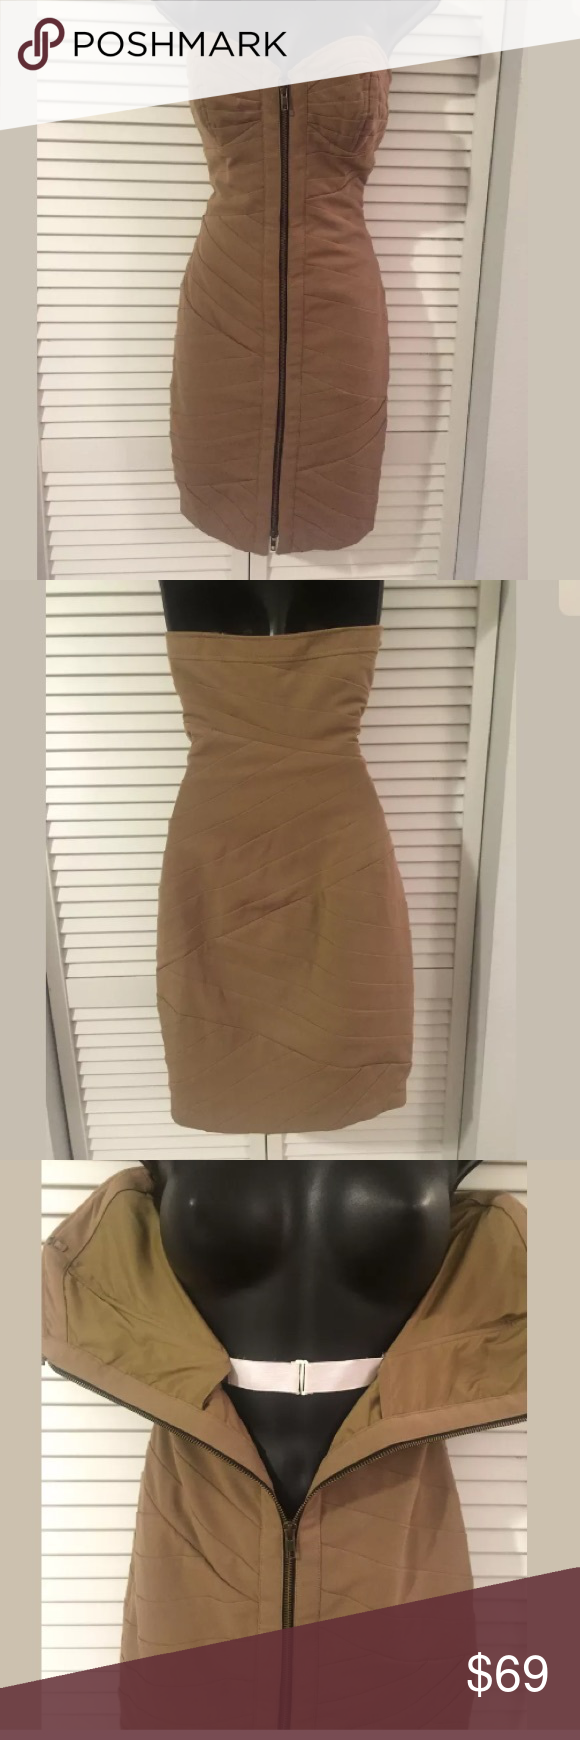 Tracy Reese Bandage dress Mocha. Polyester spandex blend. Hidden elastic support closure. Tracy Reese Dresses Strapless